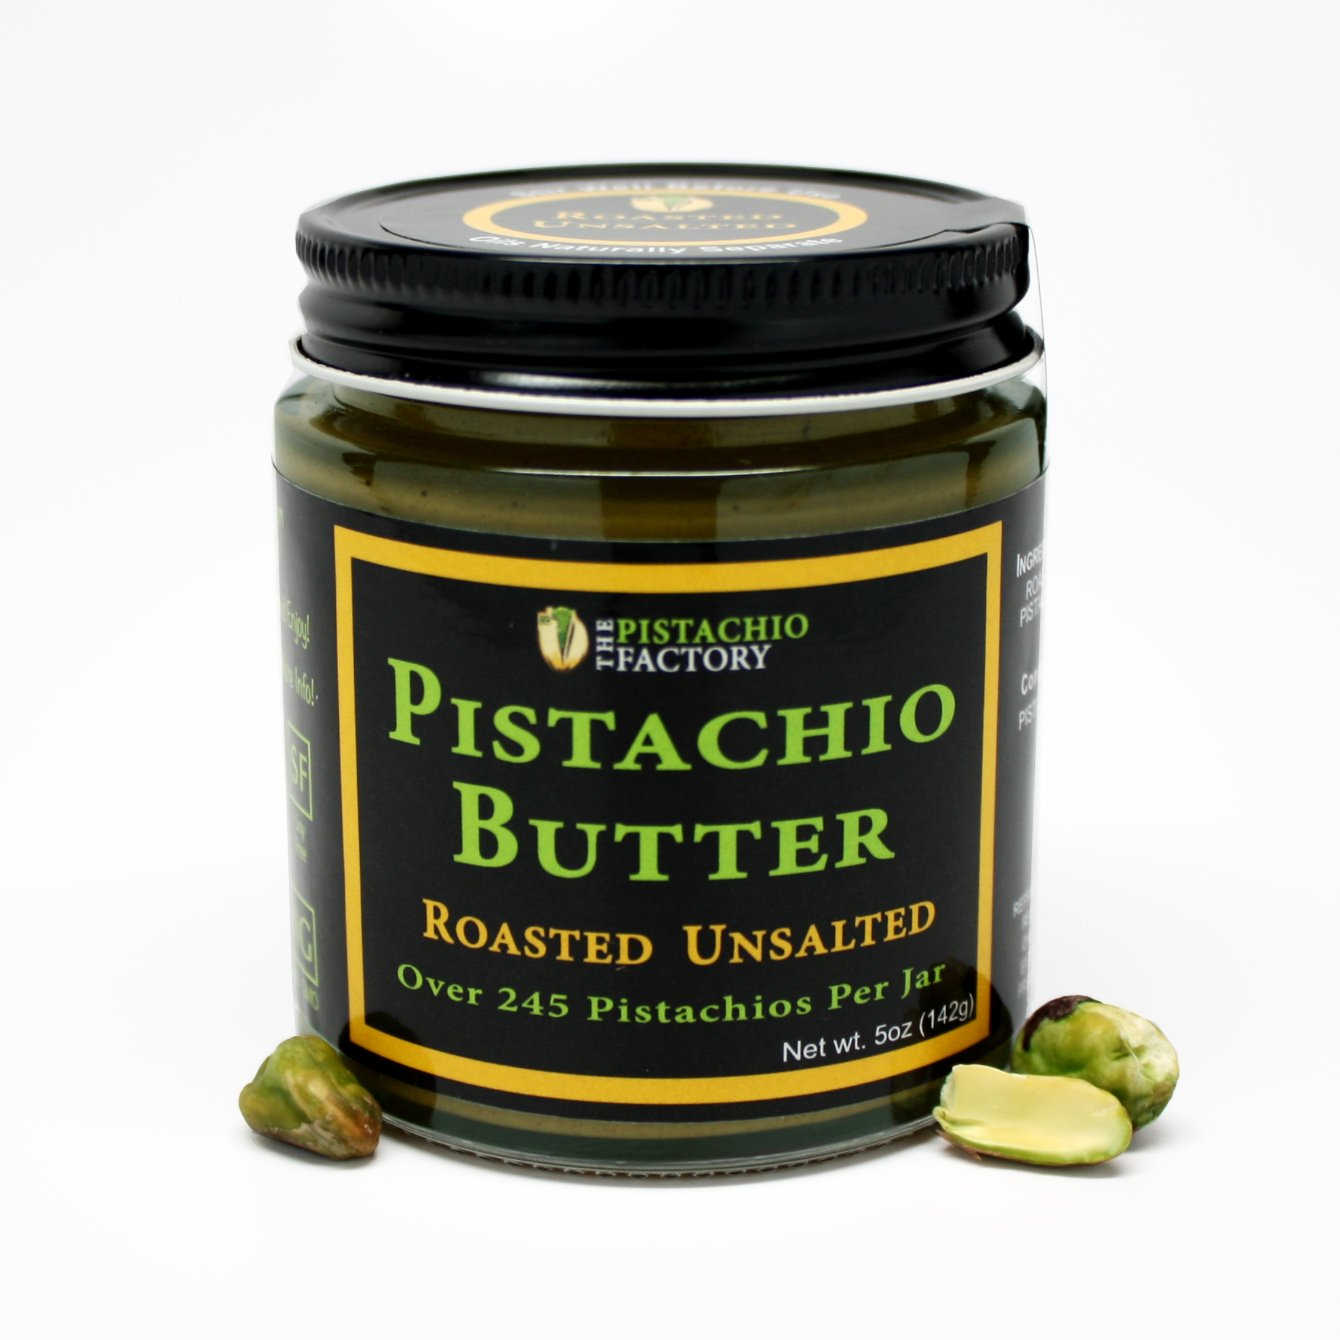 Amazon.com : Pistachio Butter - Raw Unsalted : Grocery ...